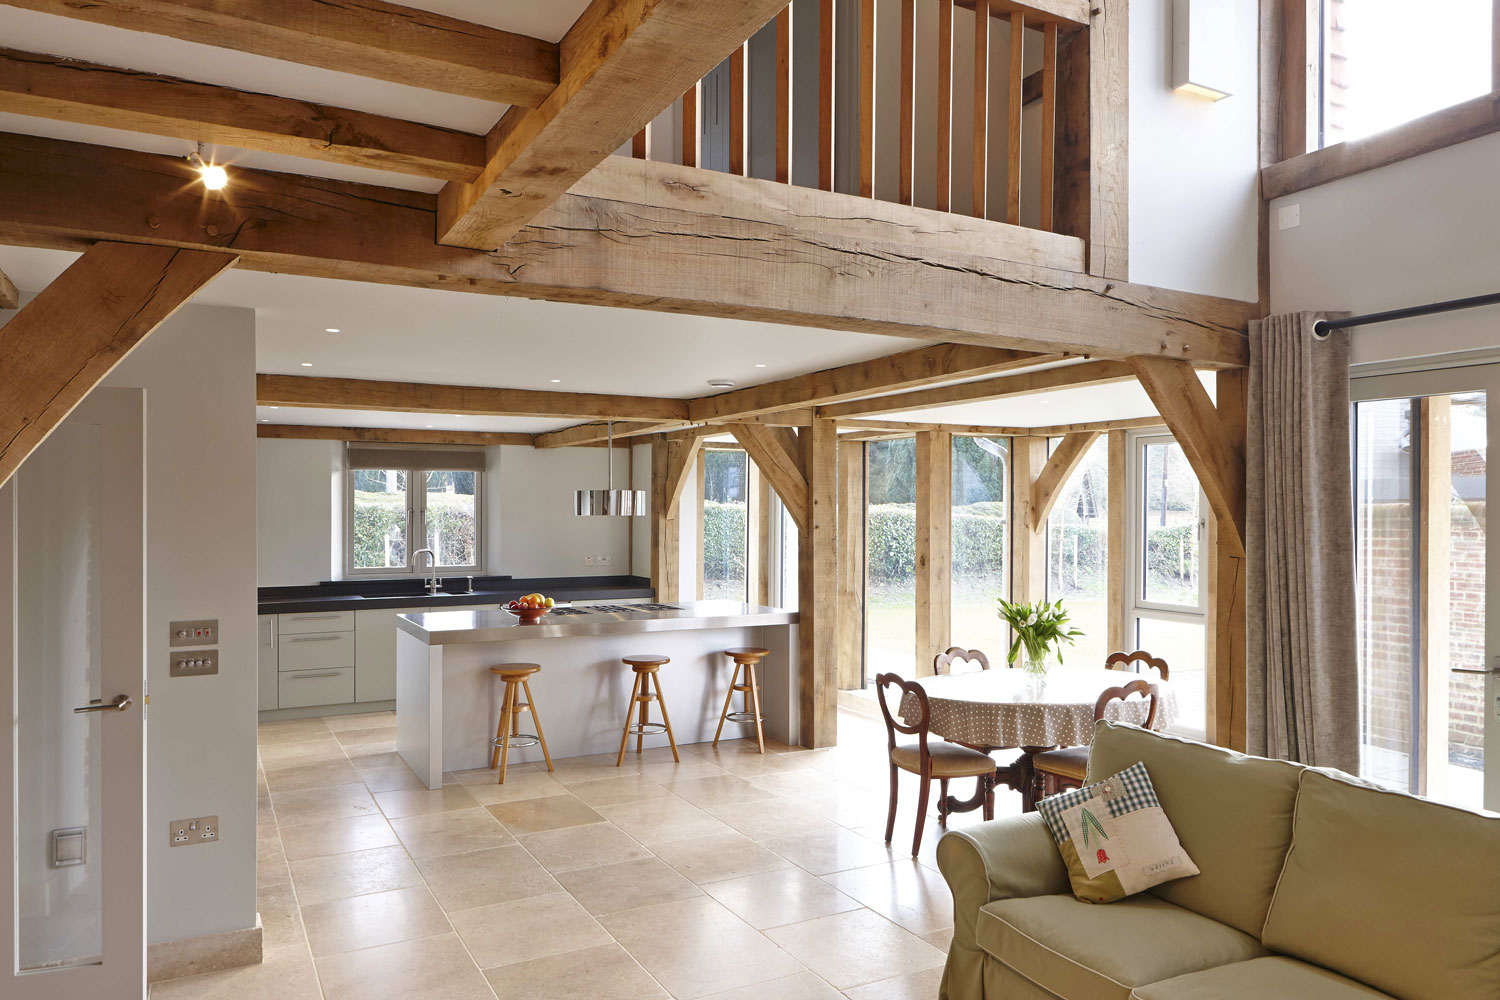 Stable Cottage - Green Oak Timber Frame Home, Liss | Residential Photographer